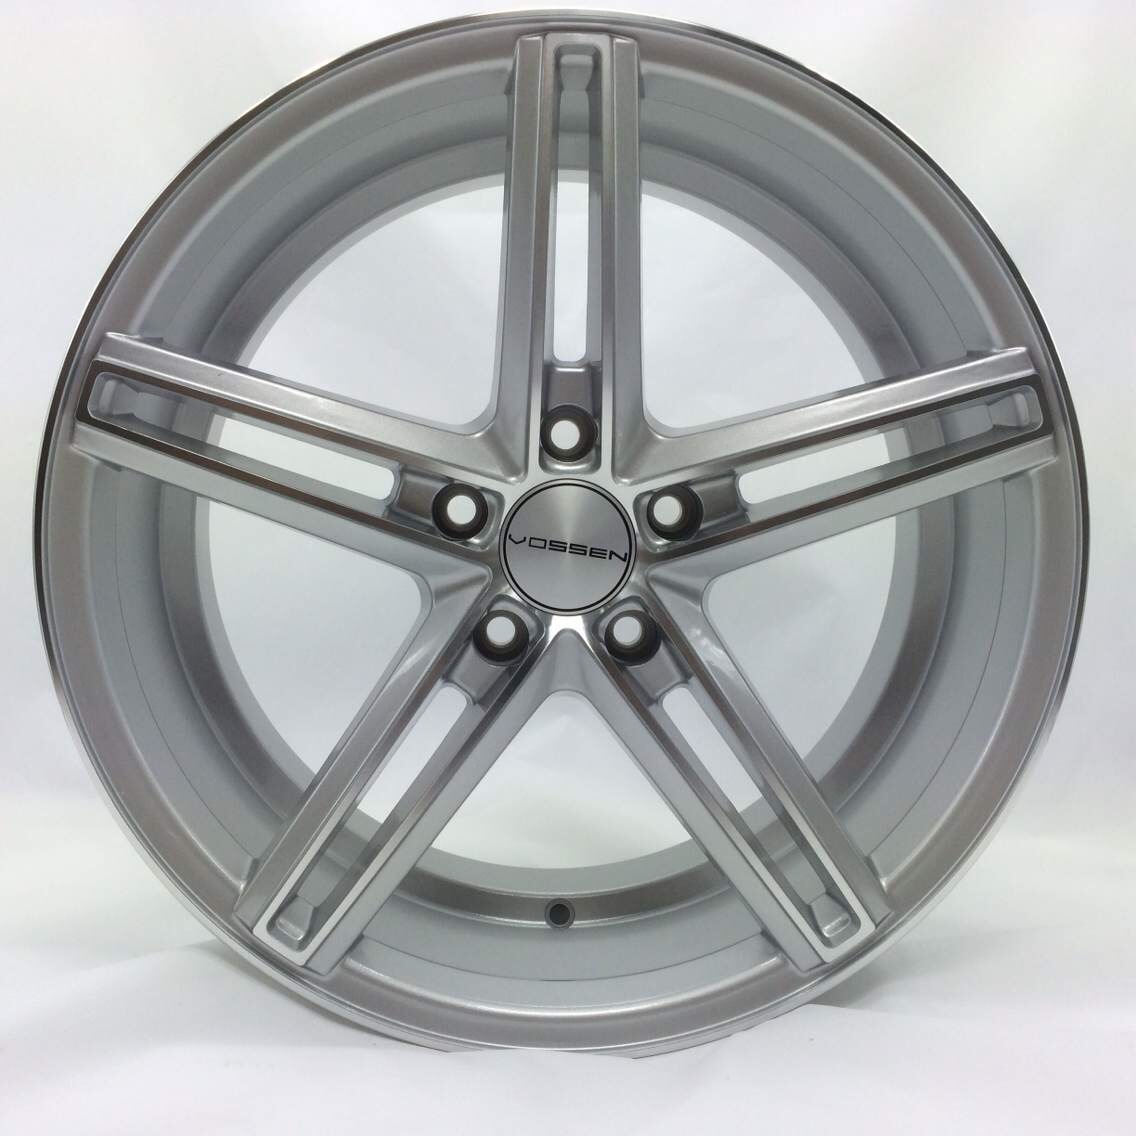 Vossen CV5 Alloy Wheel (SR5171)